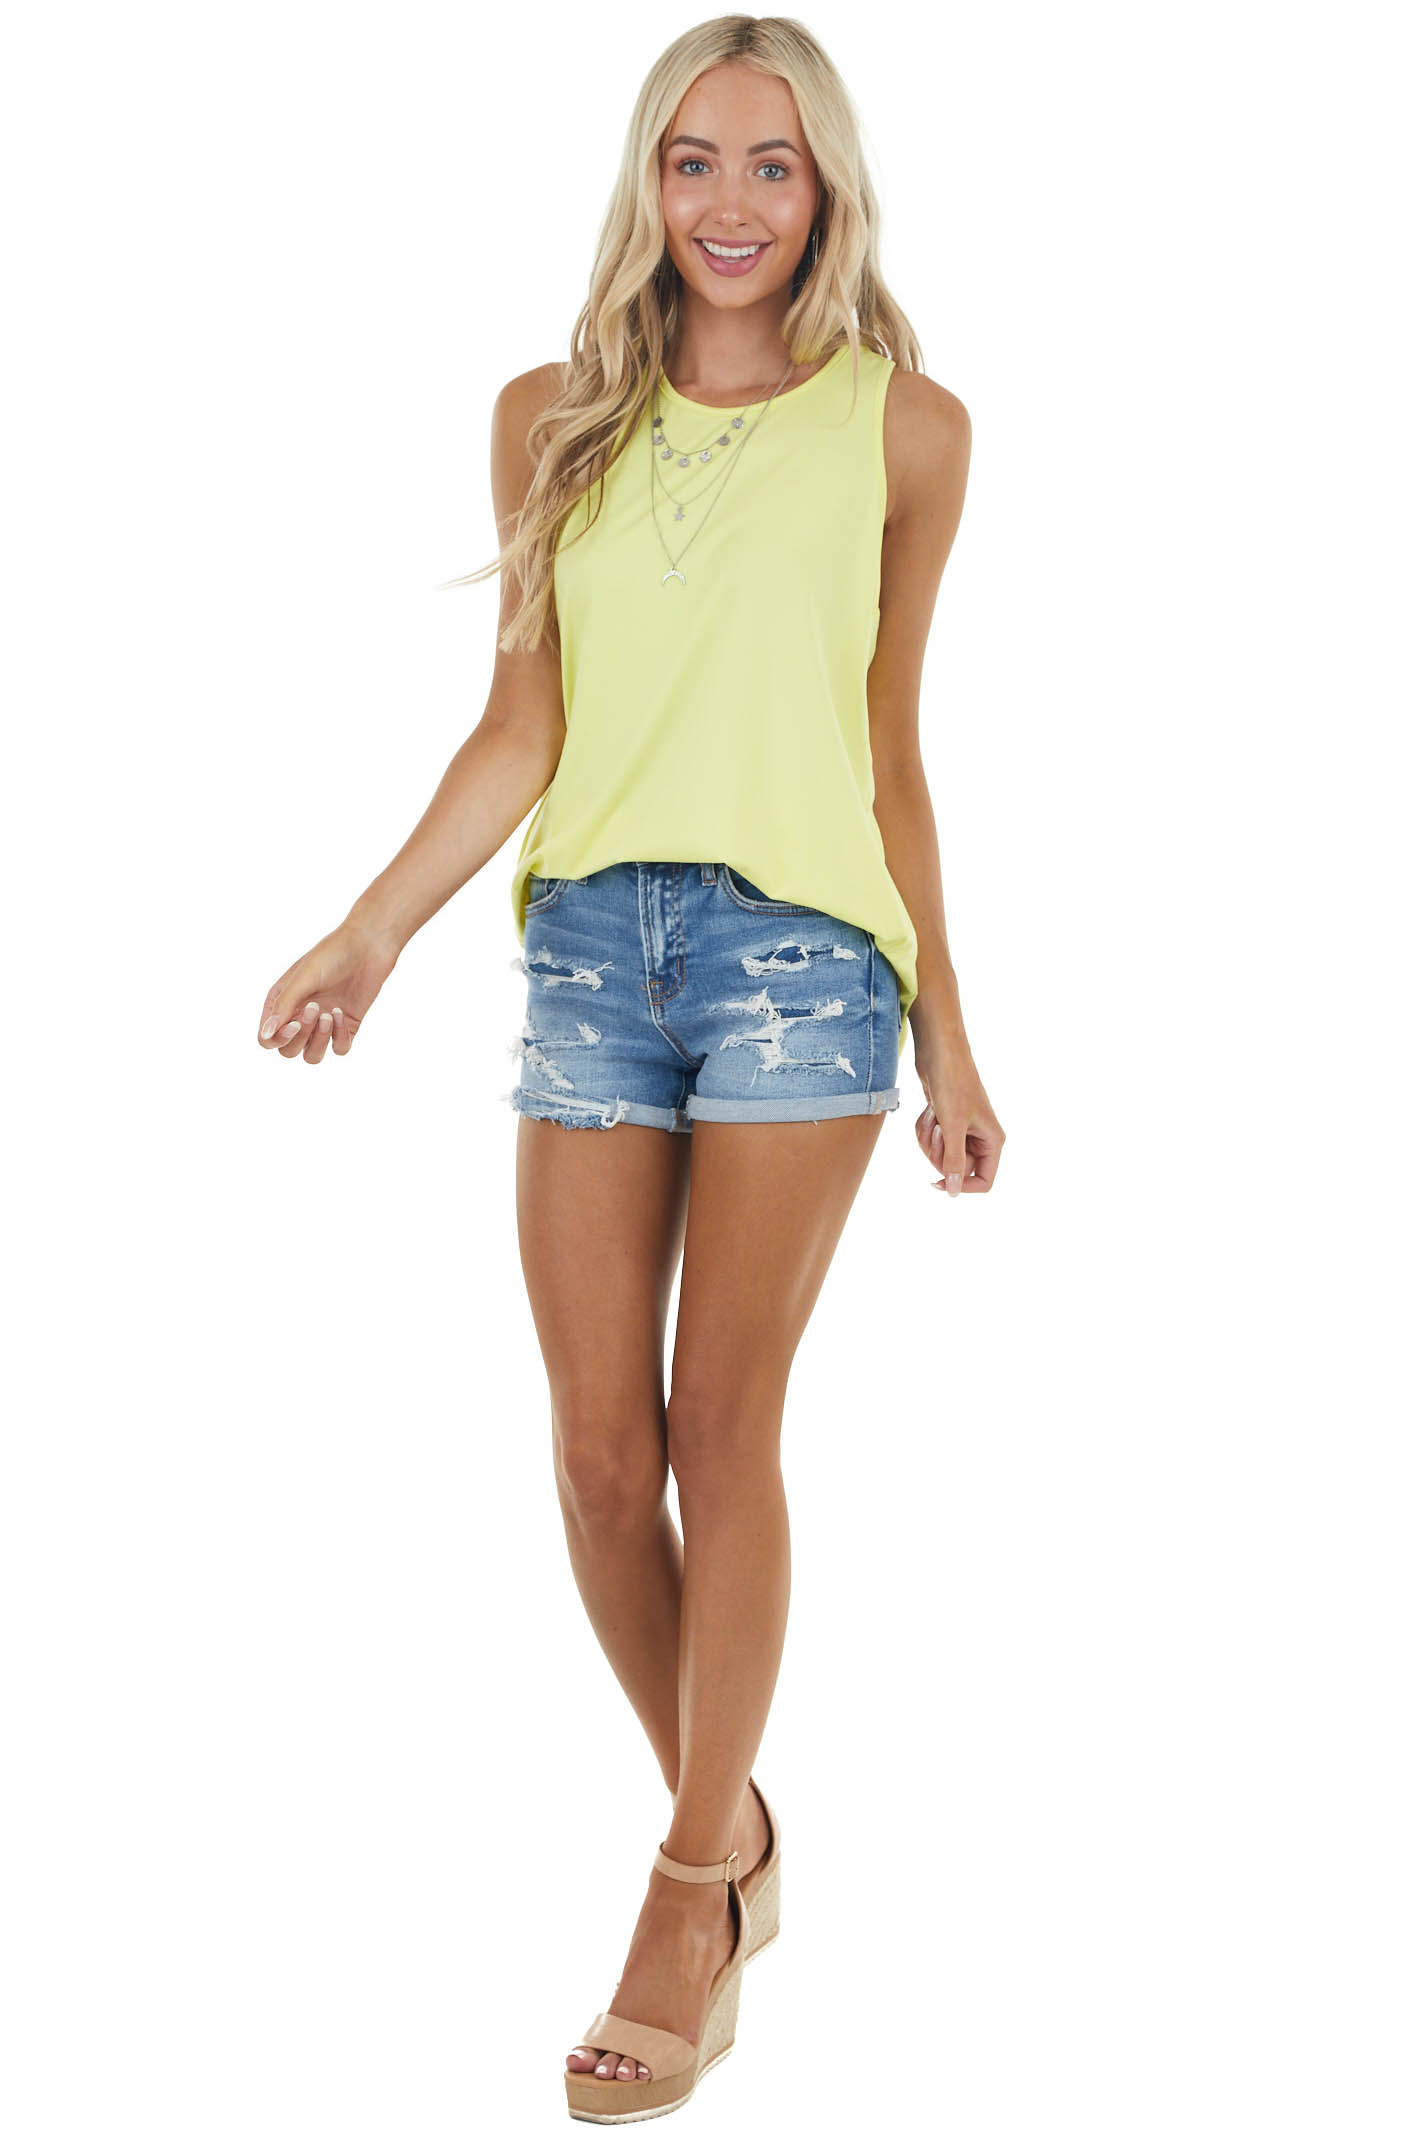 Sunshine Twisted Racerback Stretchy Knit Tank Top